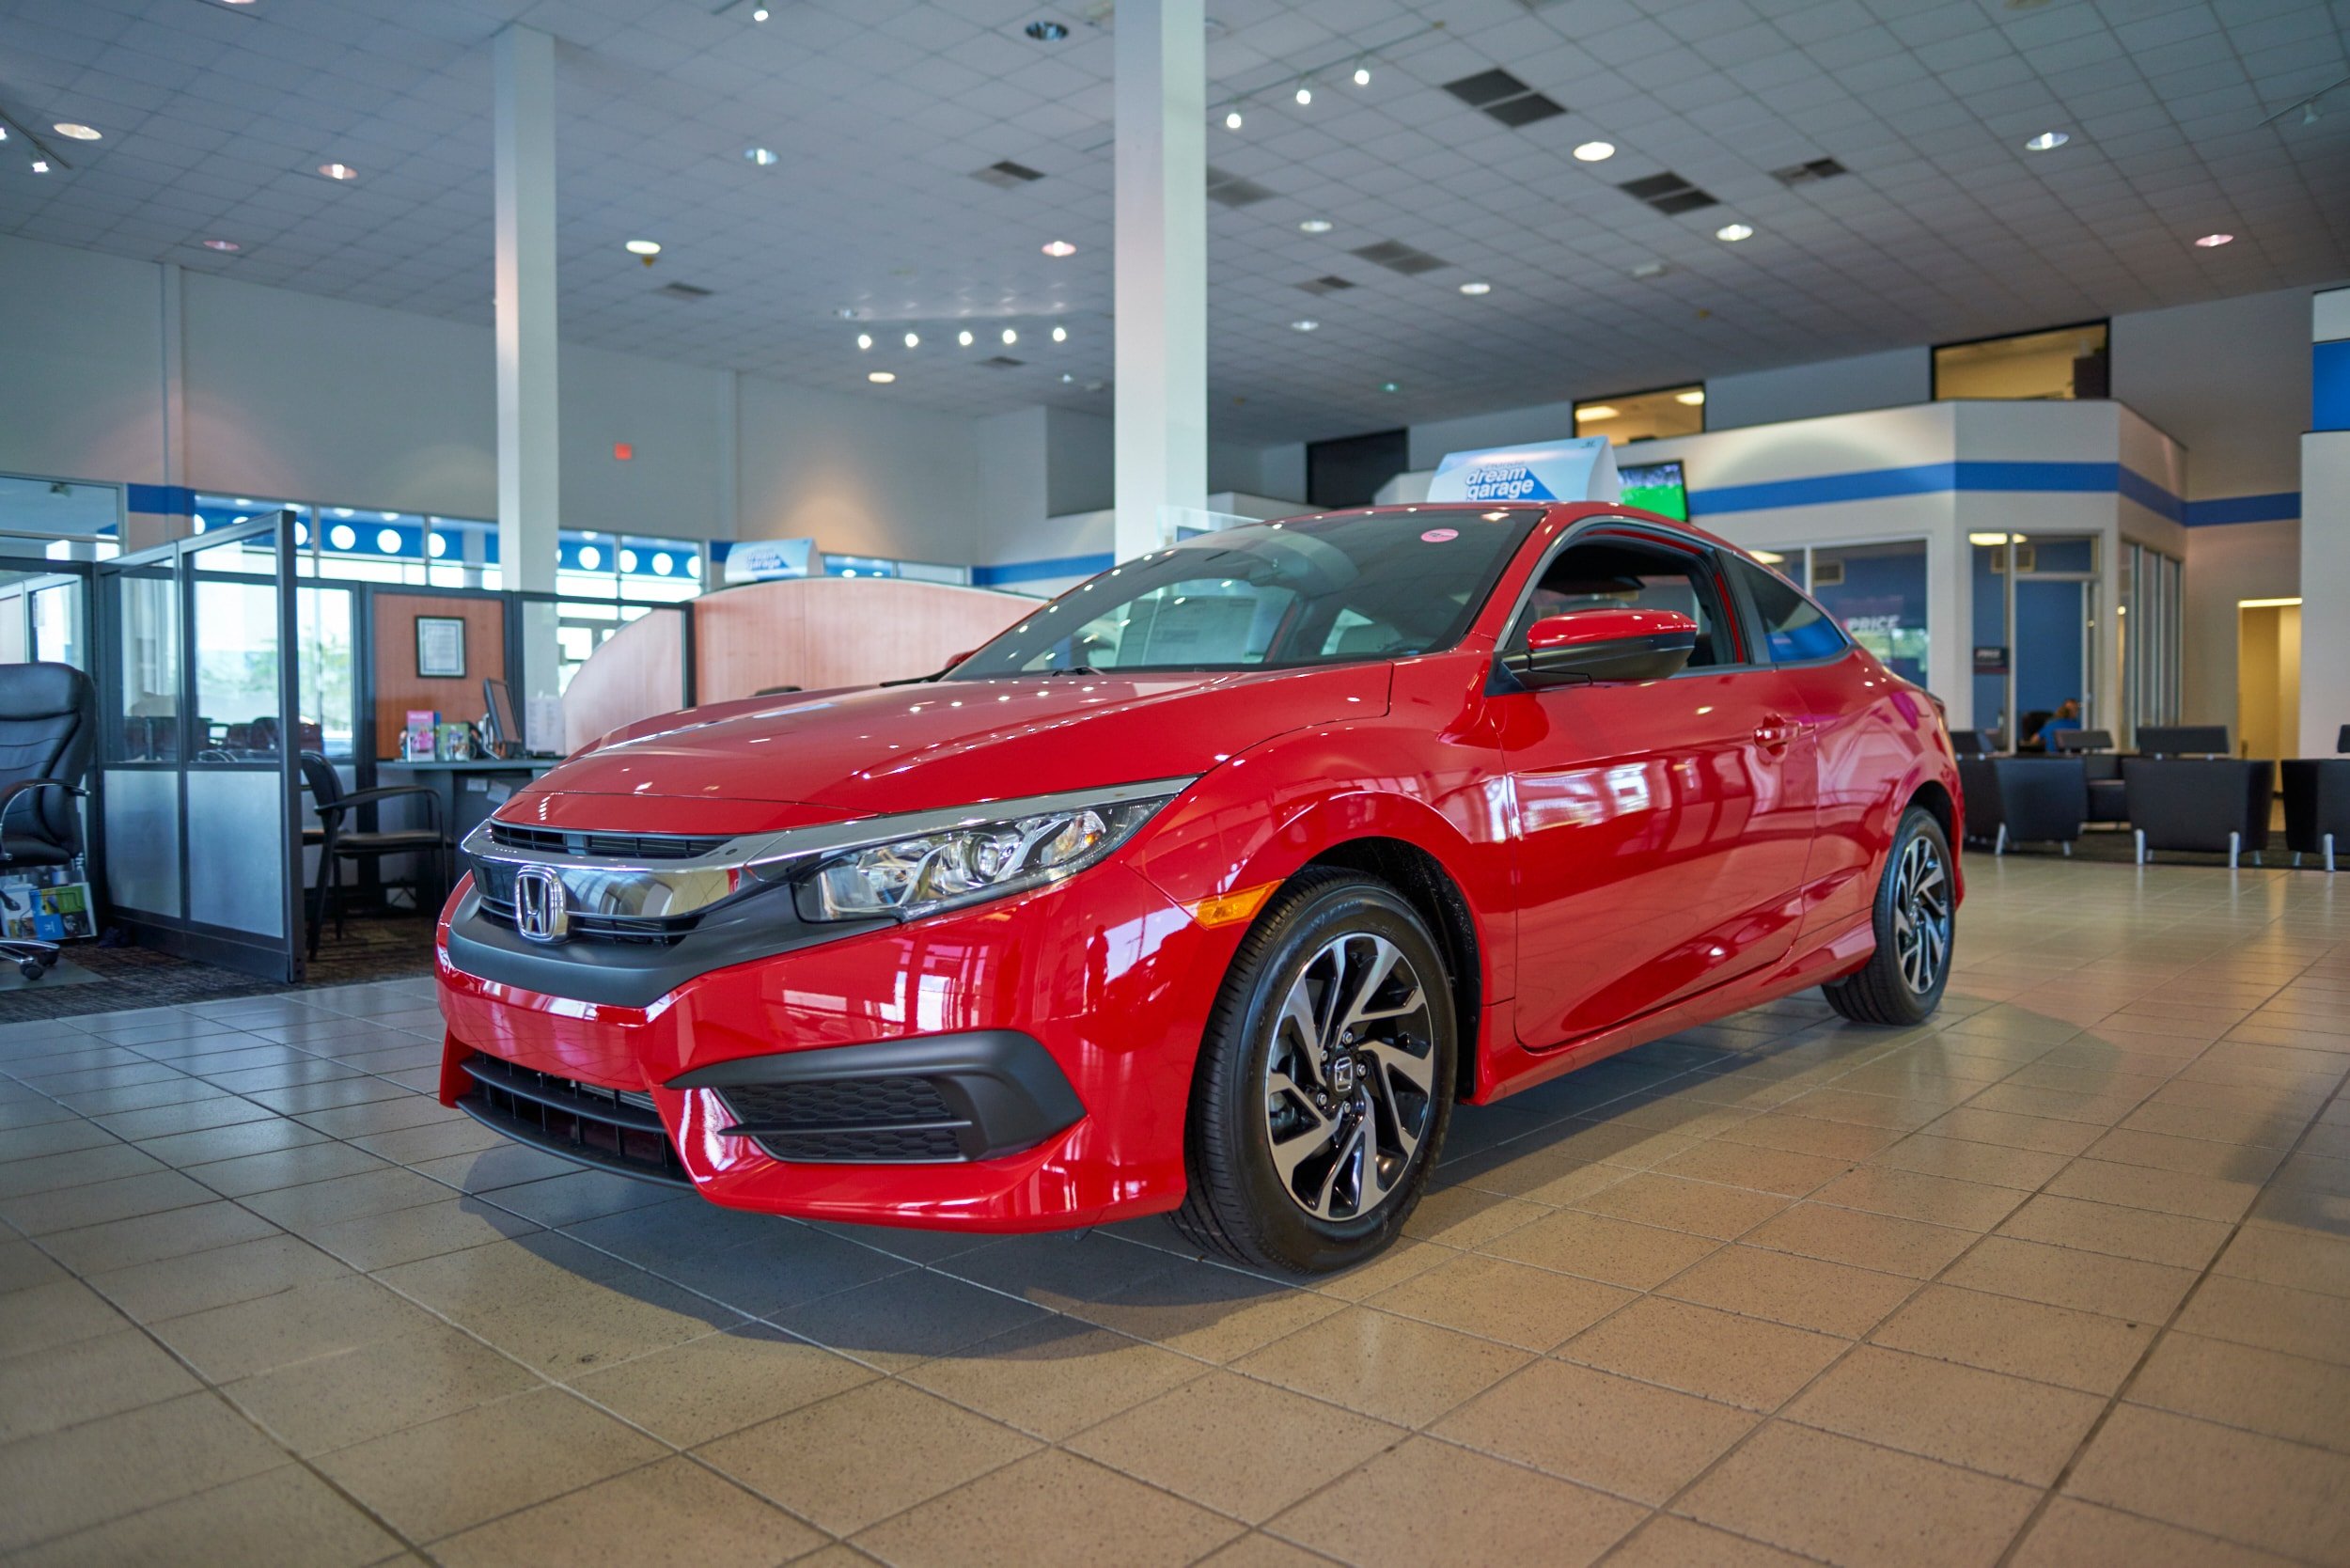 Honda Dealership Mobile Al >> About Our Autonation Honda Dealership In Mobile Al Autonation